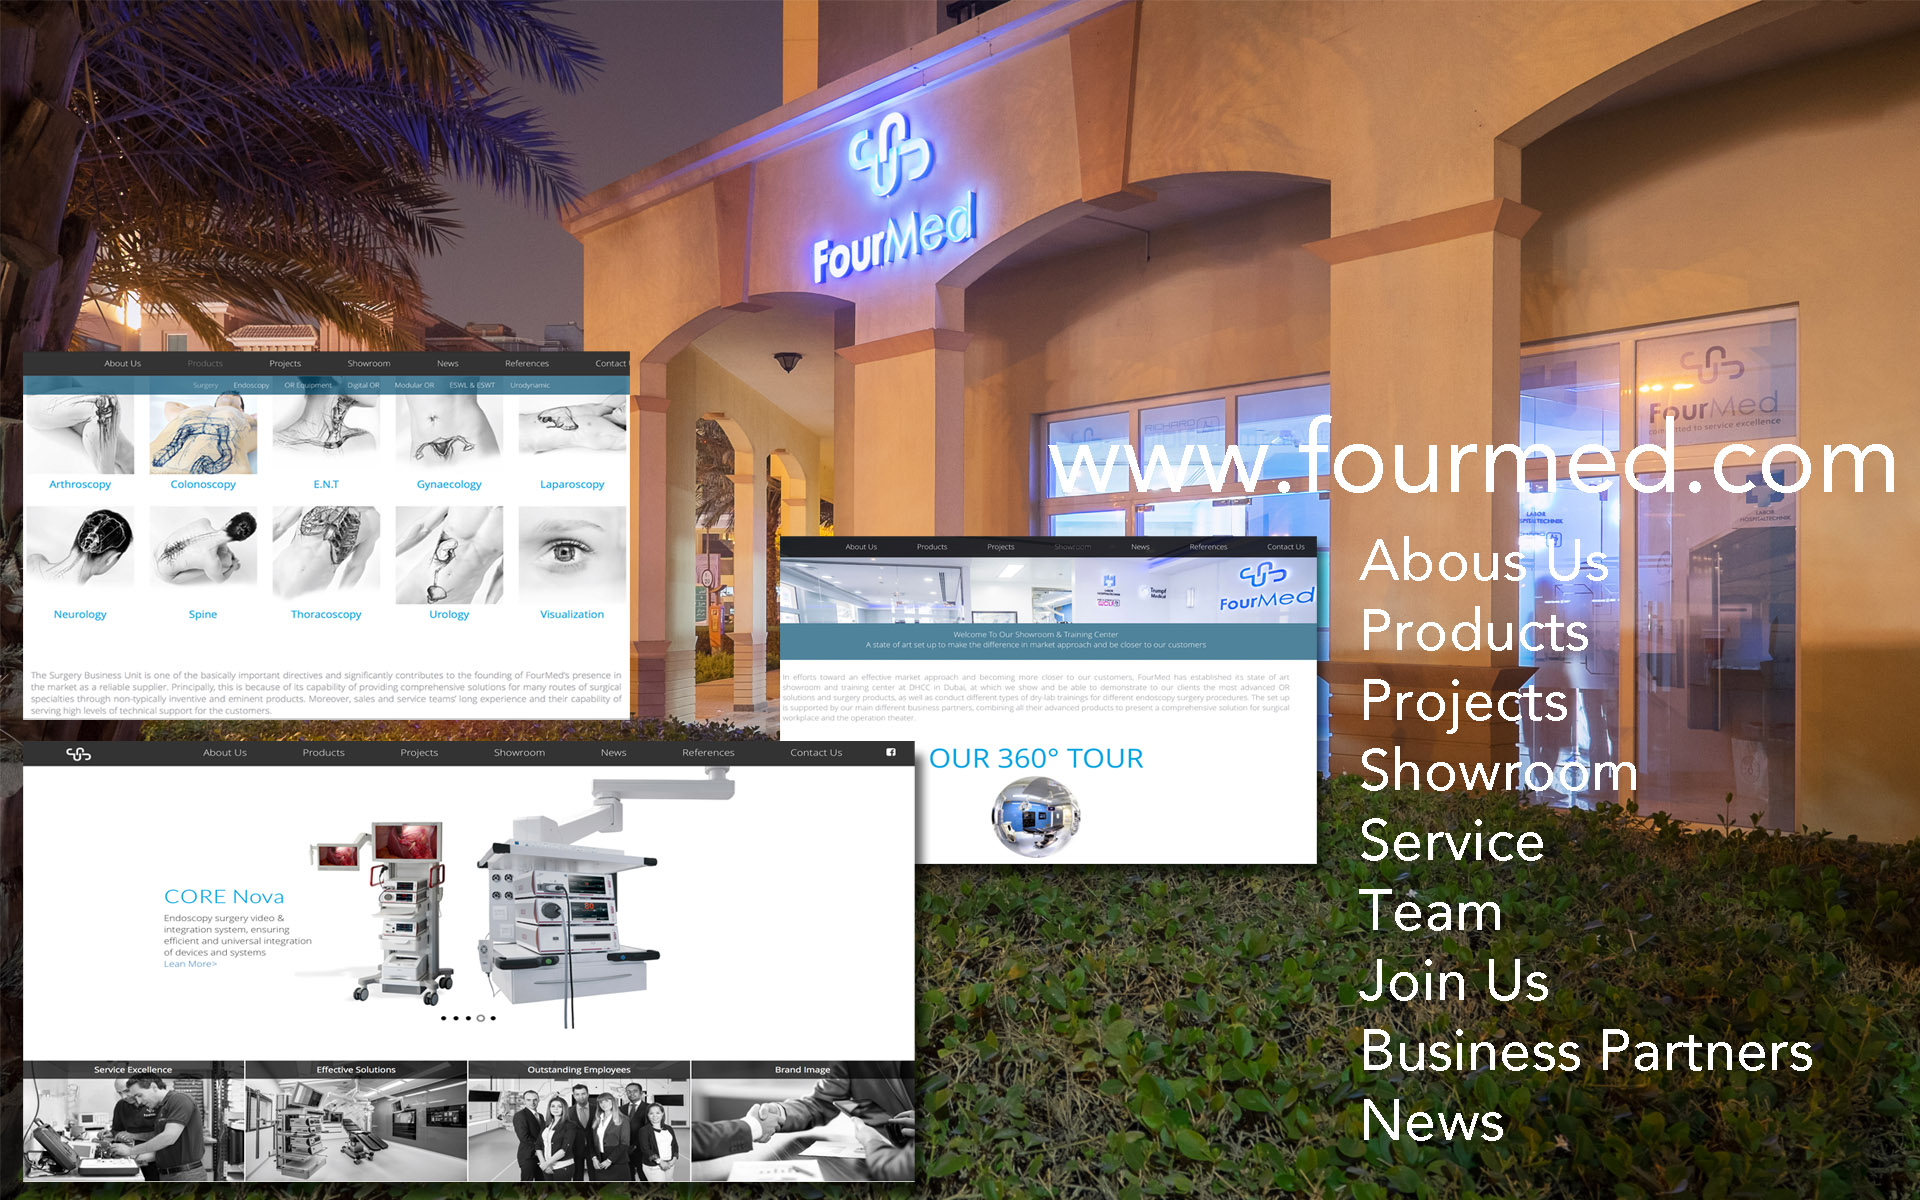 FourMed Launching its new website